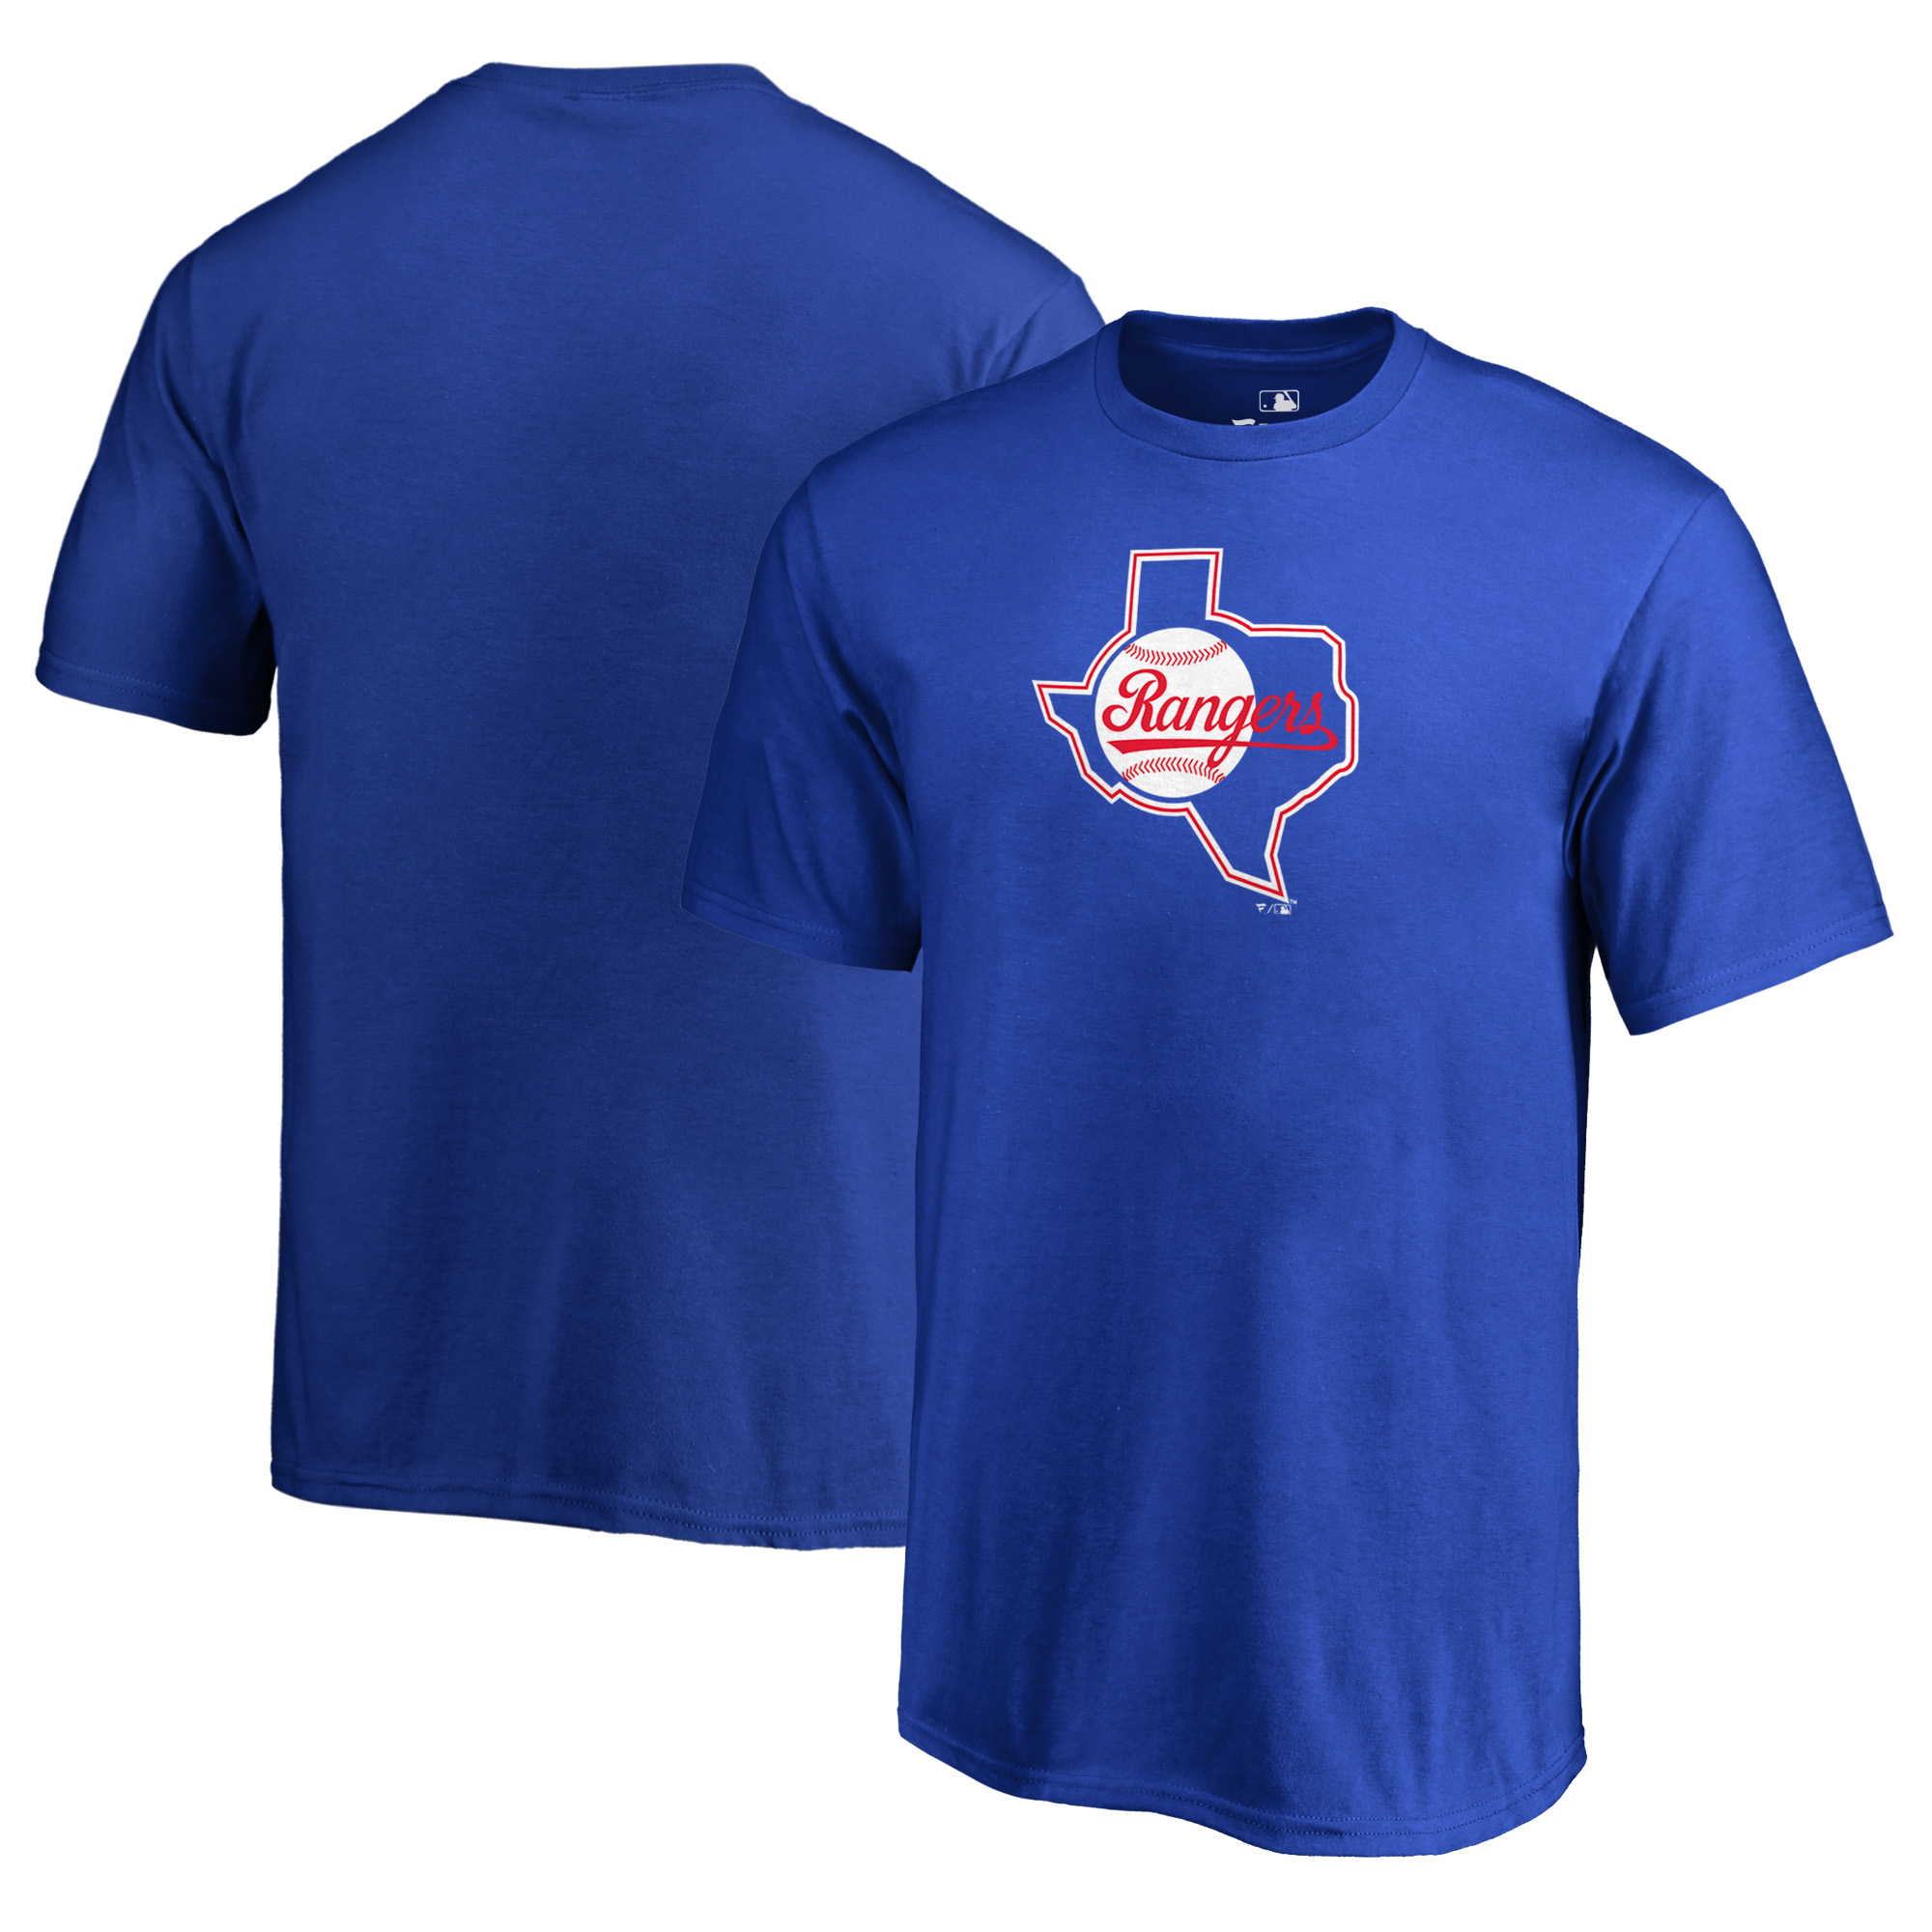 Texas Rangers Fanatics Branded Youth Cooperstown Collection Huntington T-Shirt - Royal